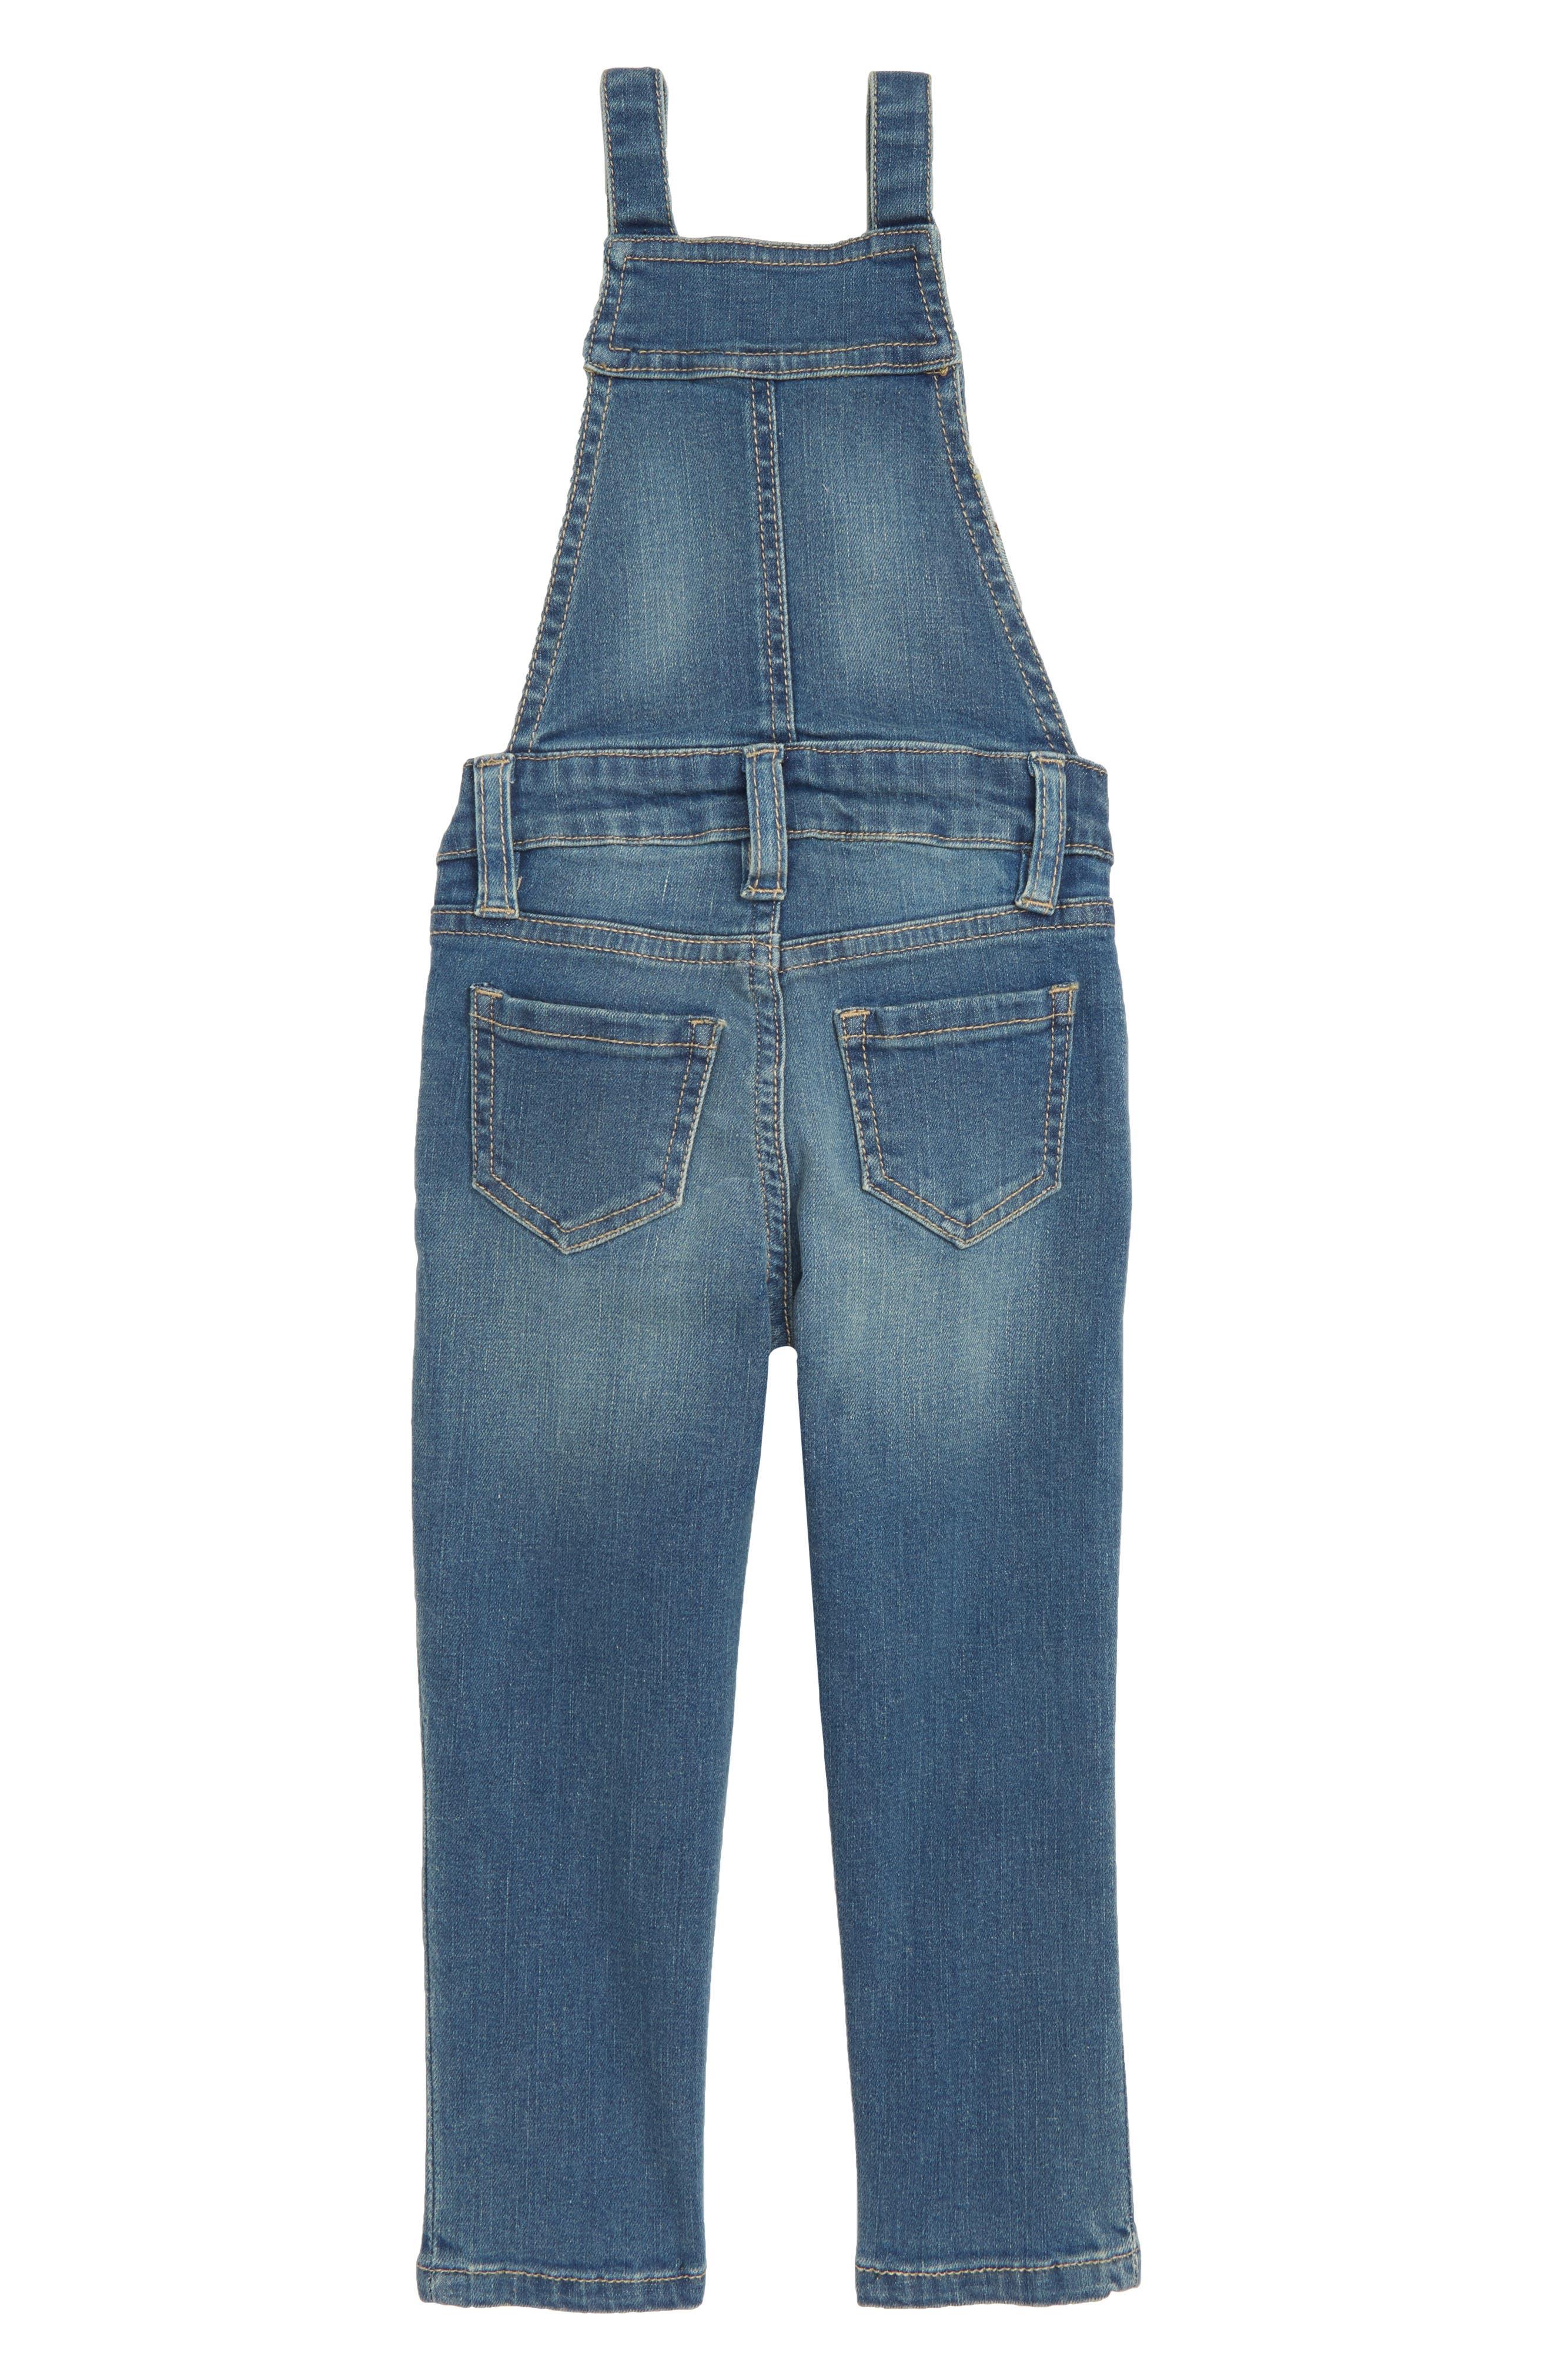 Taylor Embroidered Overalls,                             Alternate thumbnail 2, color,                             463